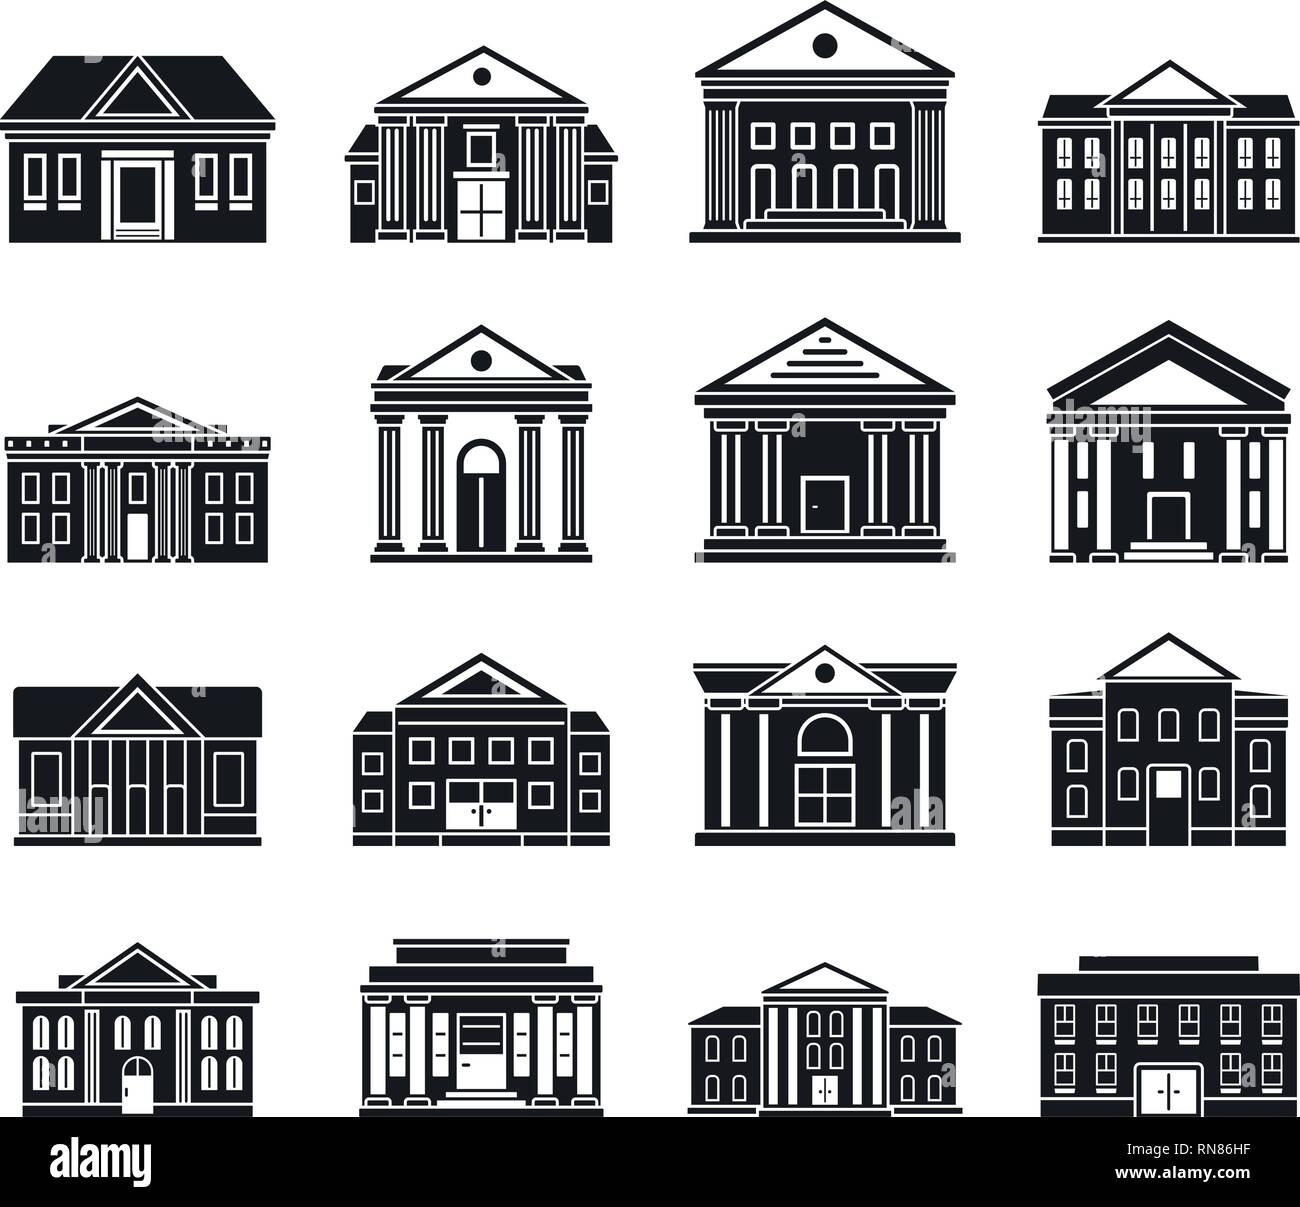 Courthouse building icons set. Simple set of courthouse building vector icons for web design on white background - Stock Image